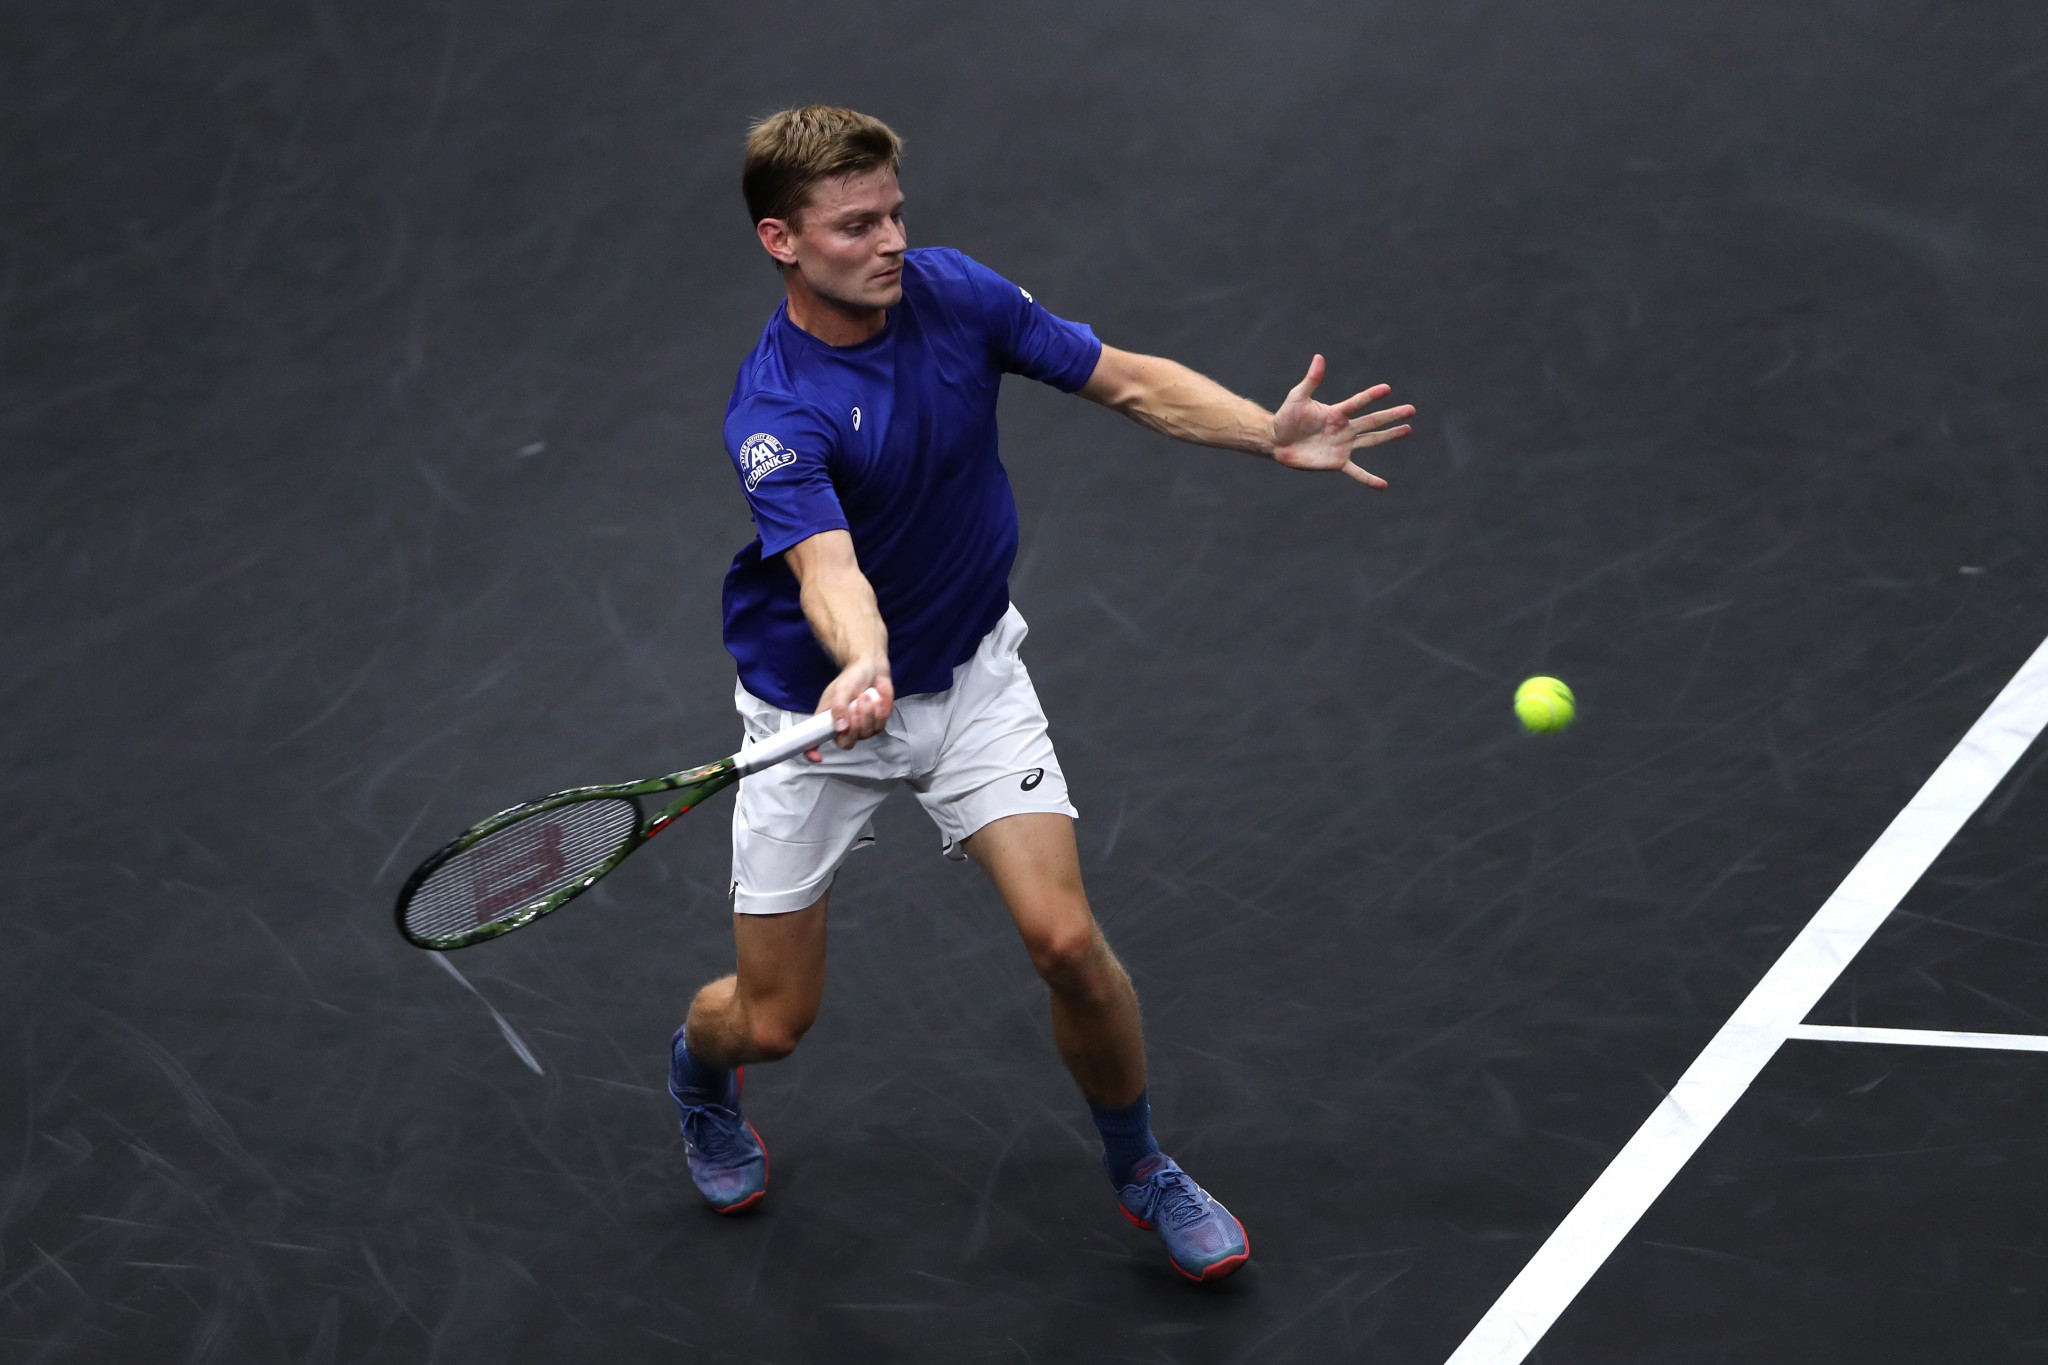 Team Europe establish lead on day one of 2018 Laver Cup despite doubles defeat for Federer and Djokovic